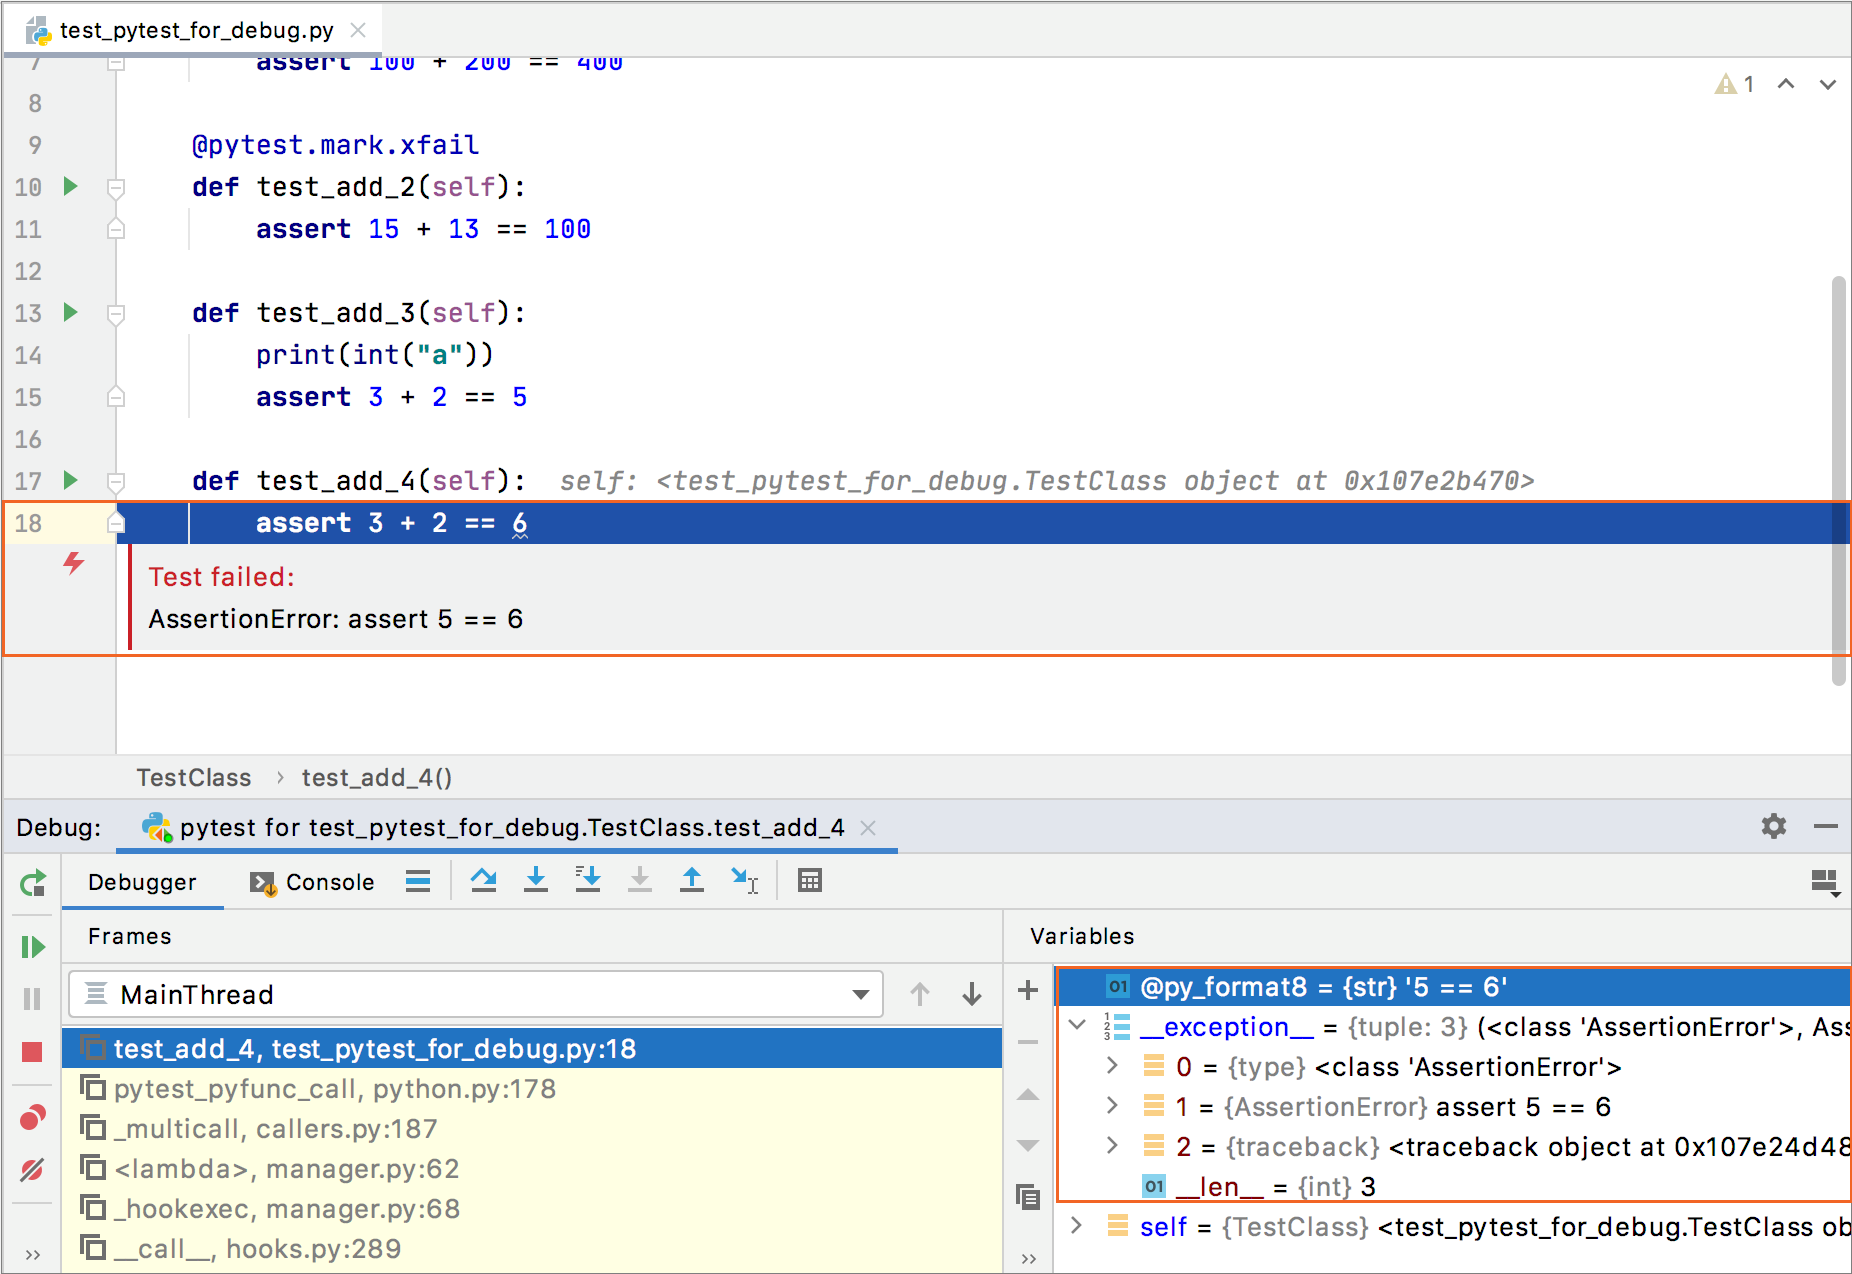 Exception breakpoint is added when debugging a failed test